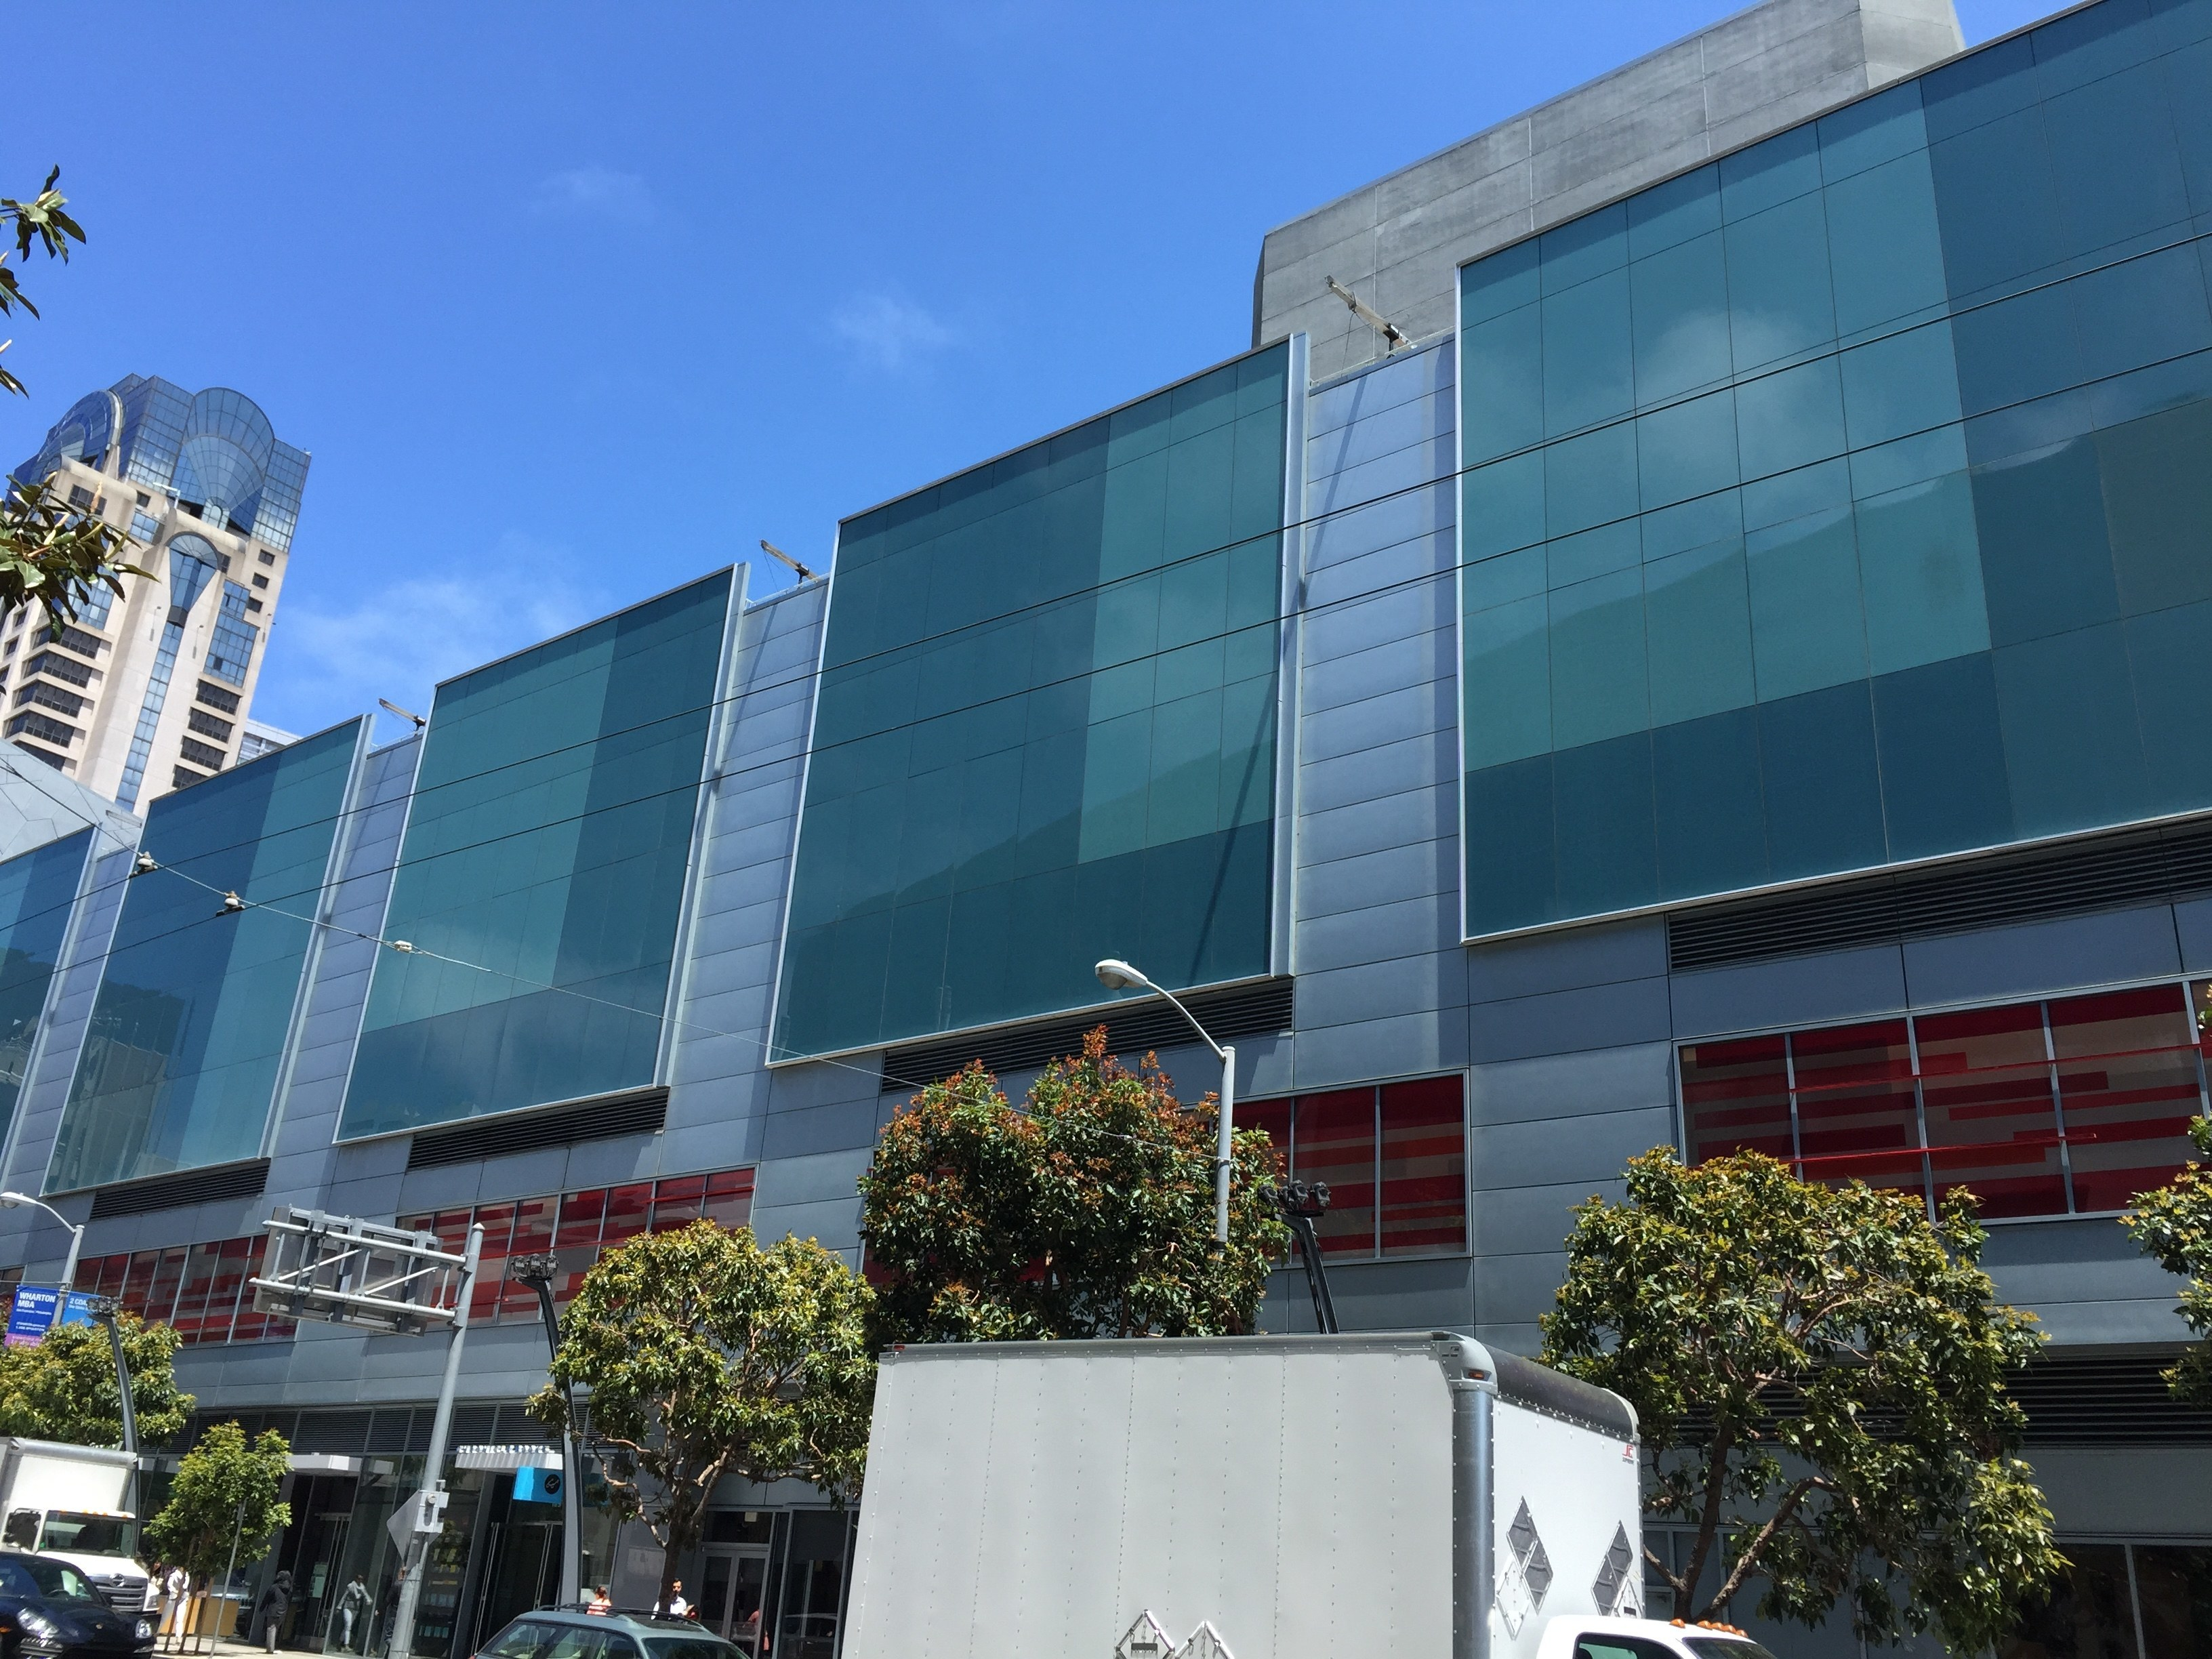 More WWDC banners will likely be displayed here over the next few days.